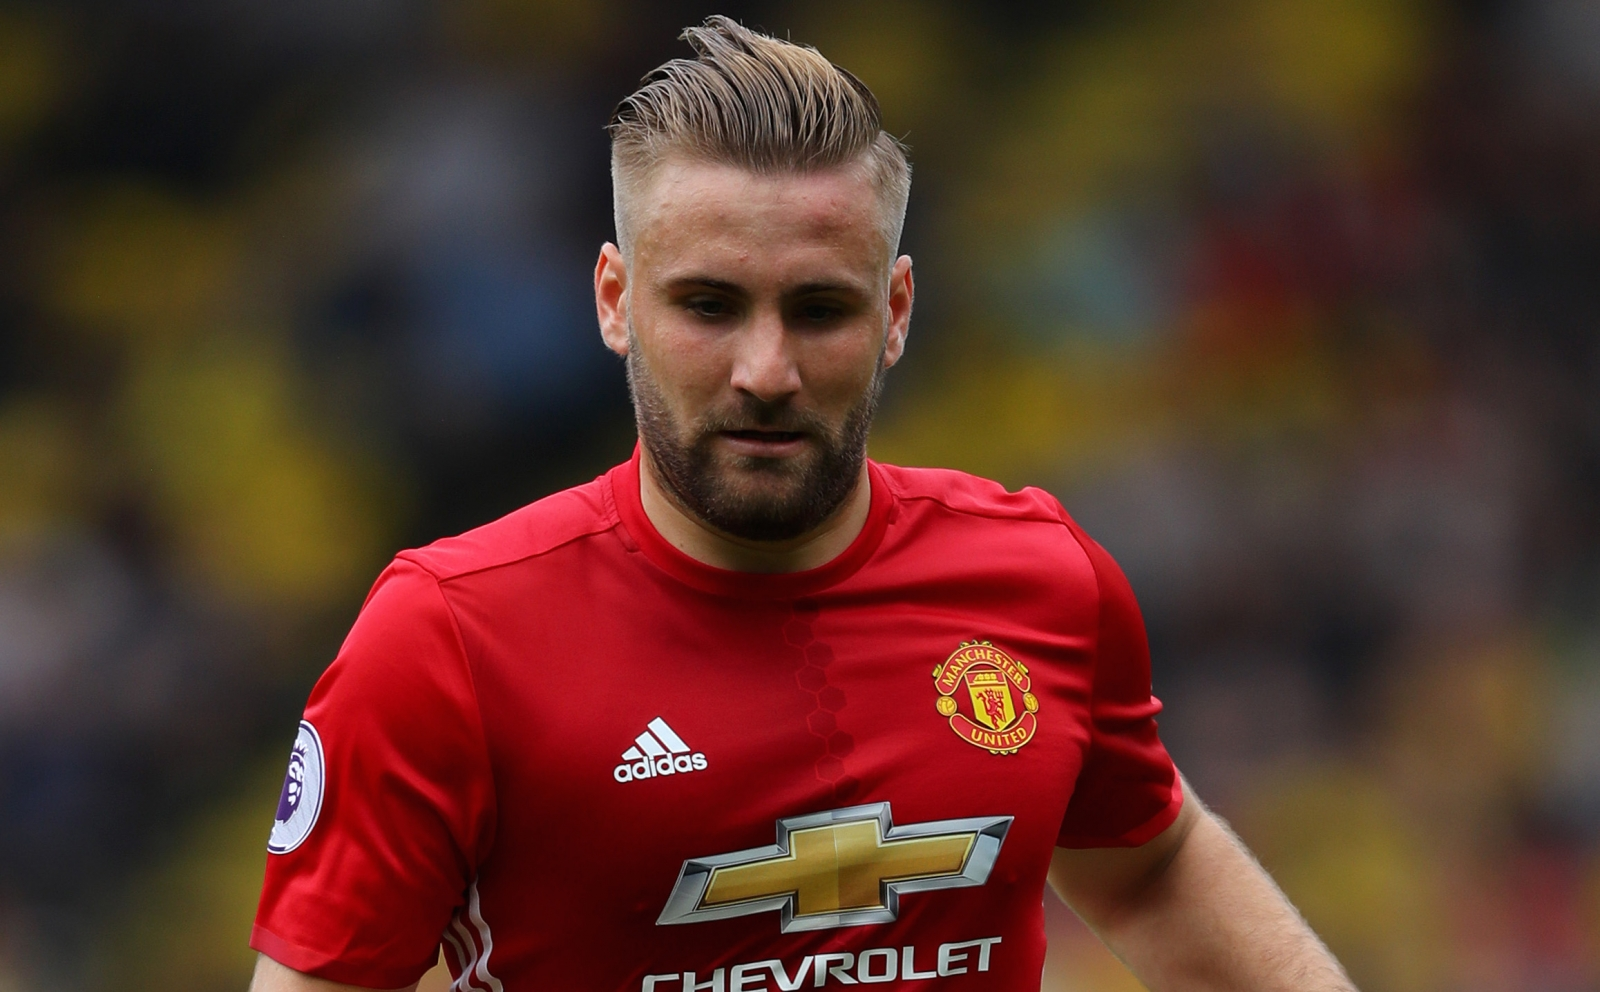 Luke Shaw Is Back For His Bf